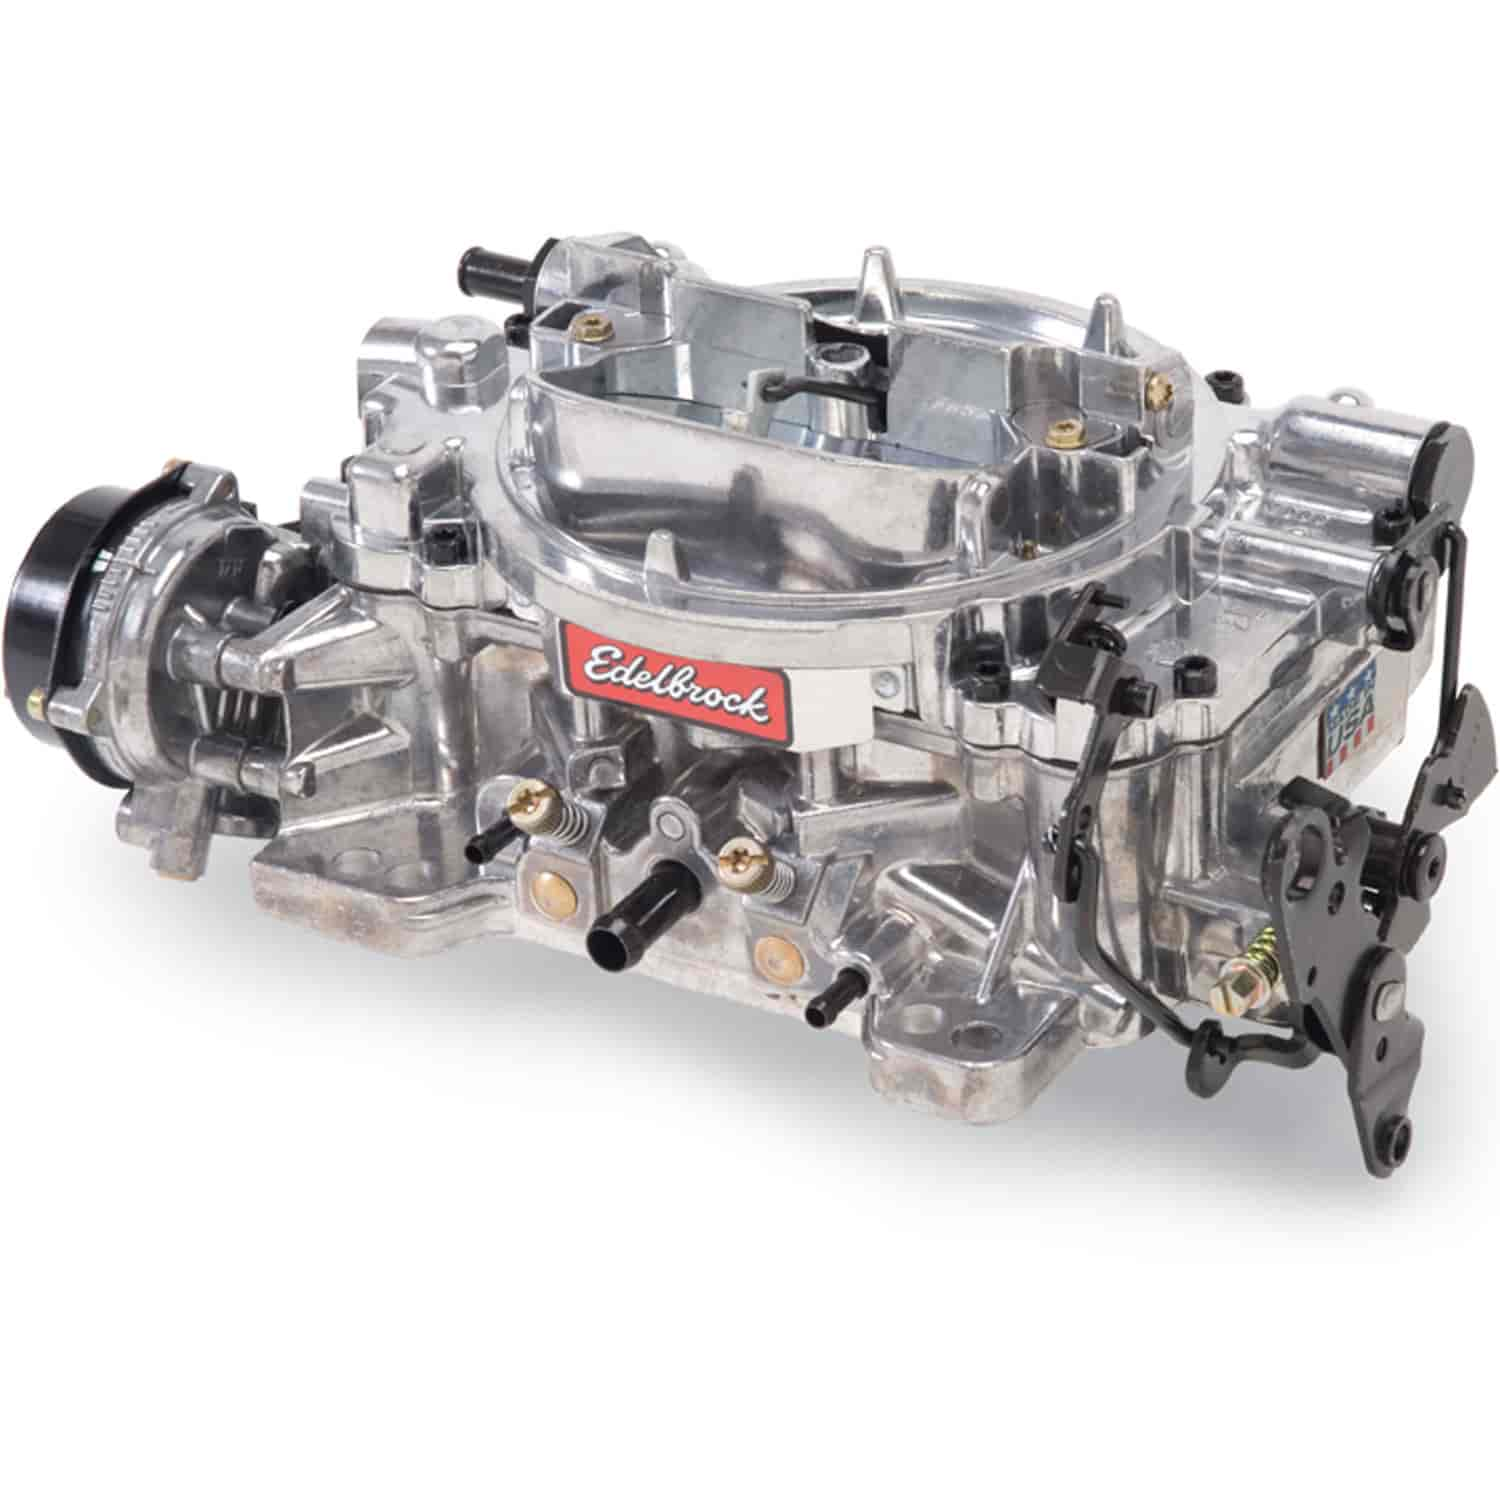 Edelbrock 1806 - Edelbrock Thunder Series AVS Carburetors